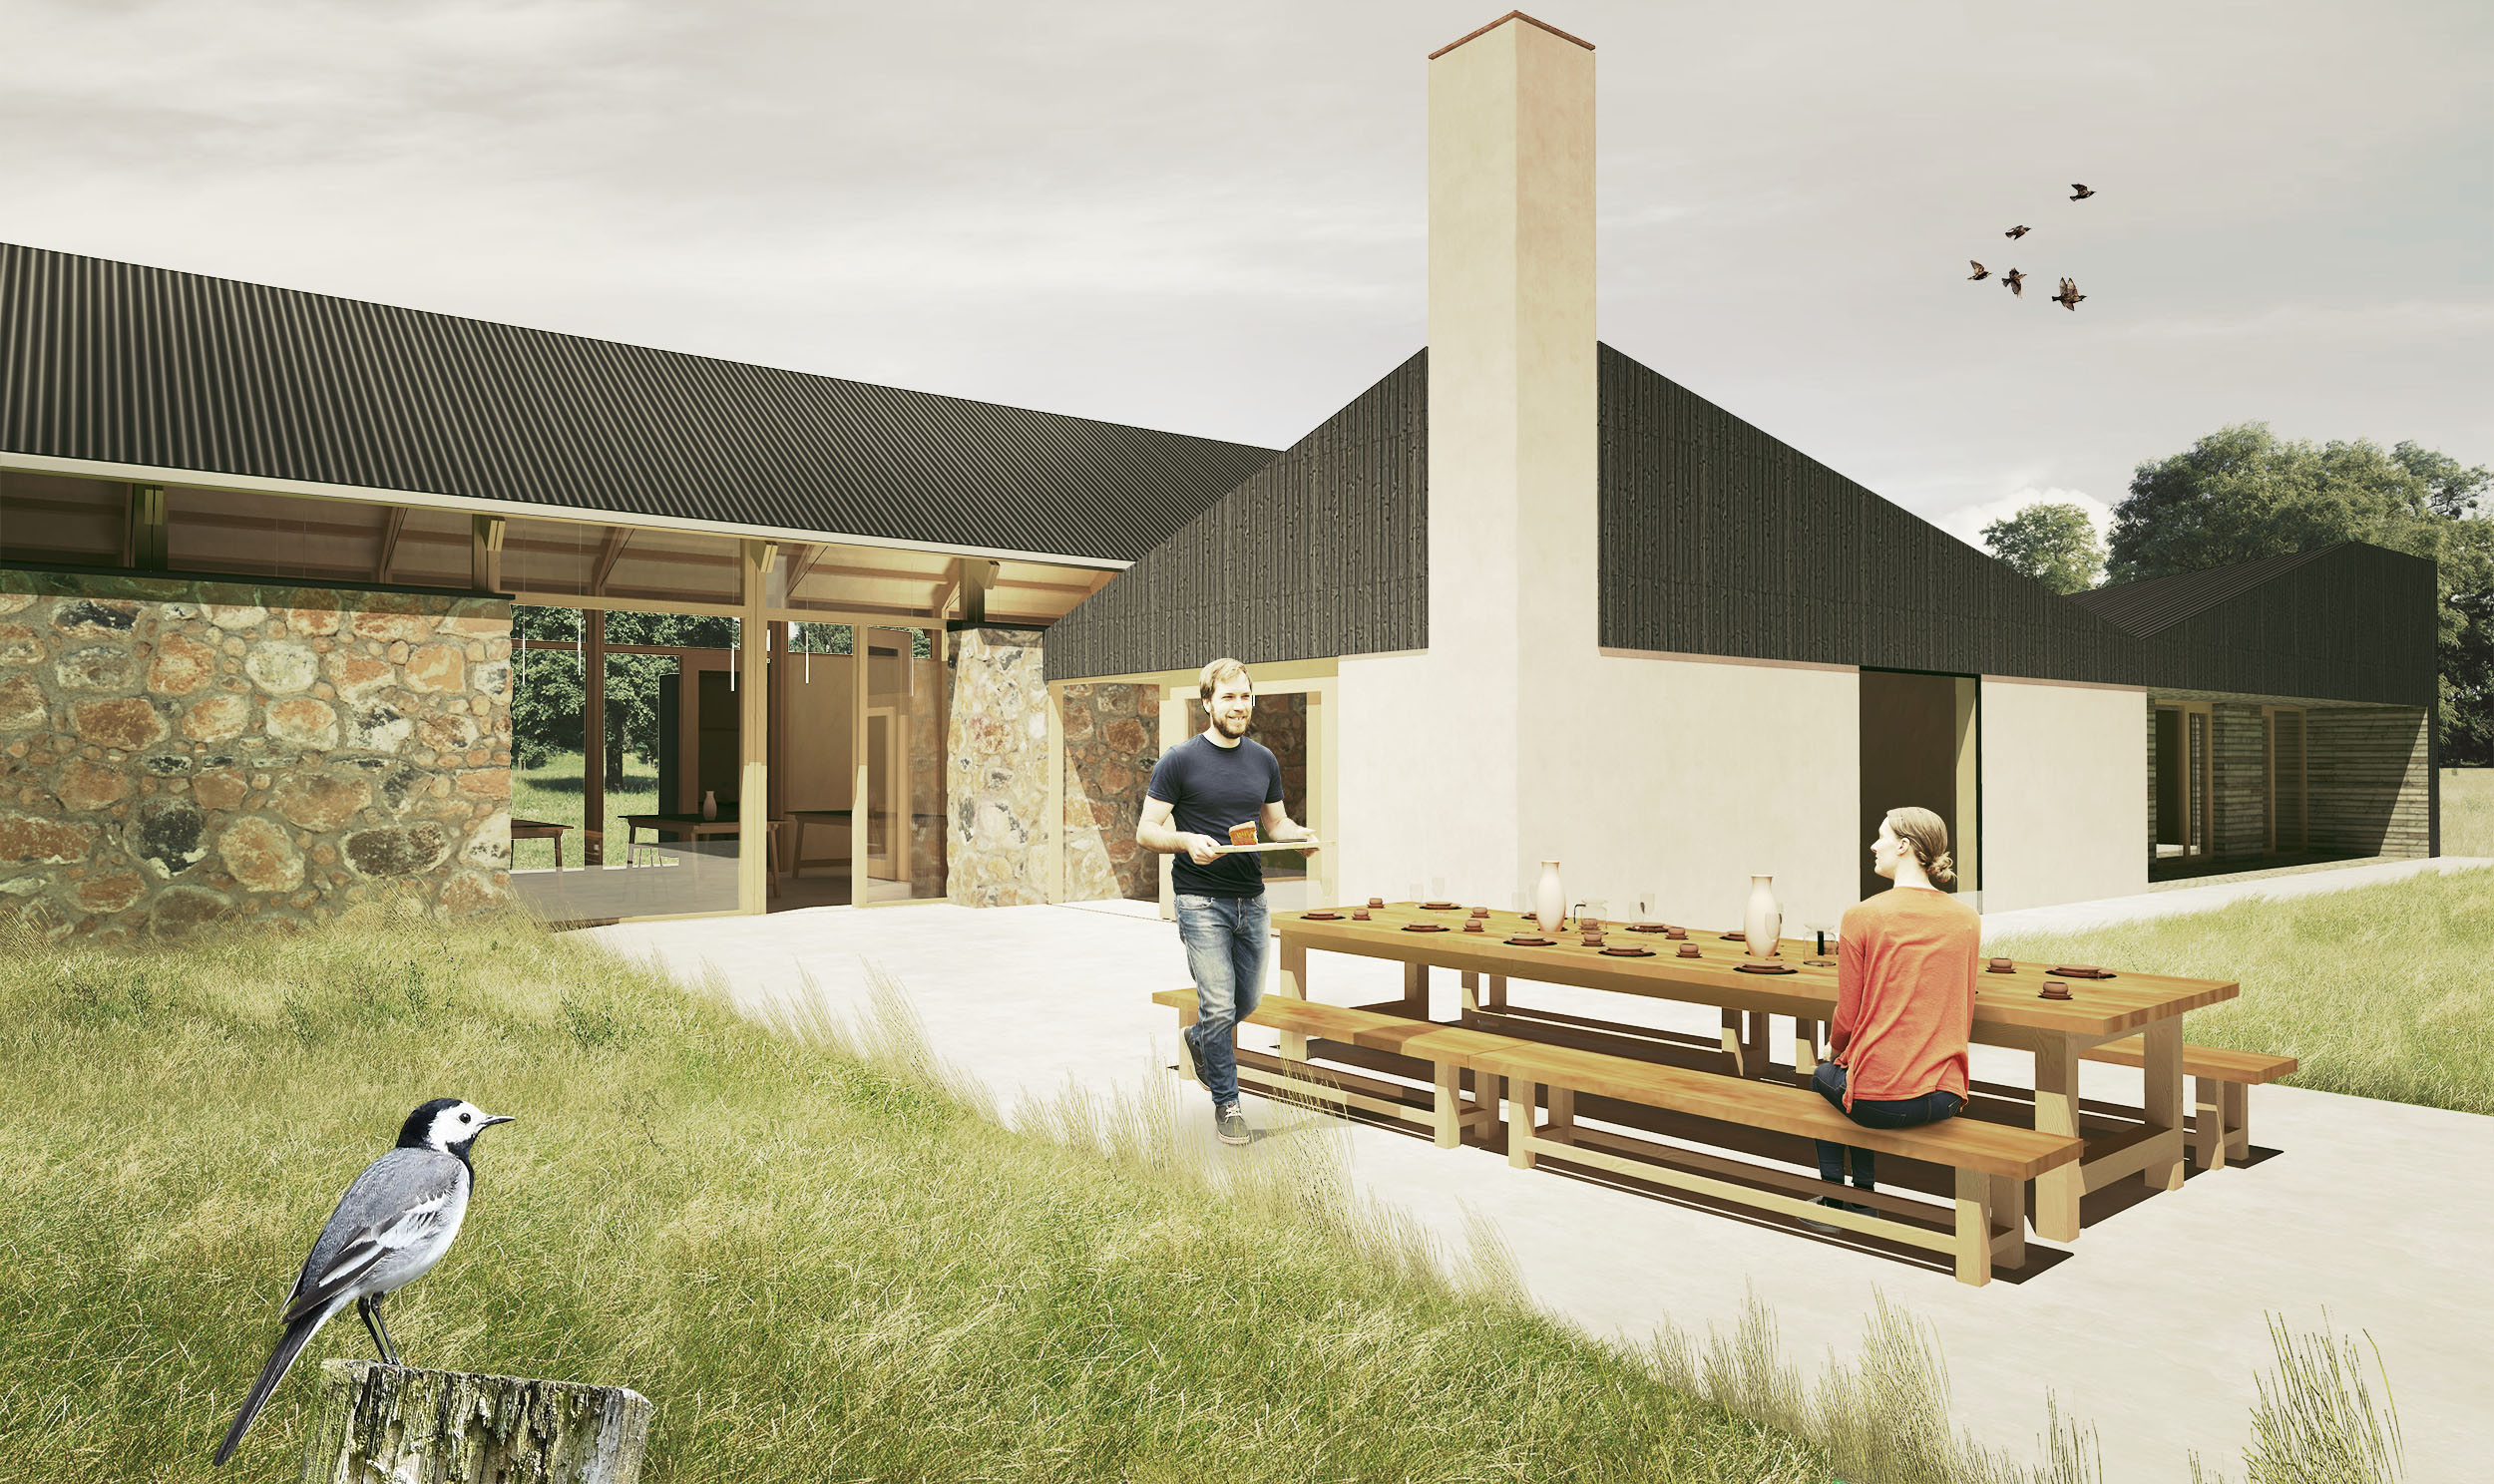 Barn conversion and extension for an eco-tourism business promoting sustainable practices, connection with nature, and mental well-being.